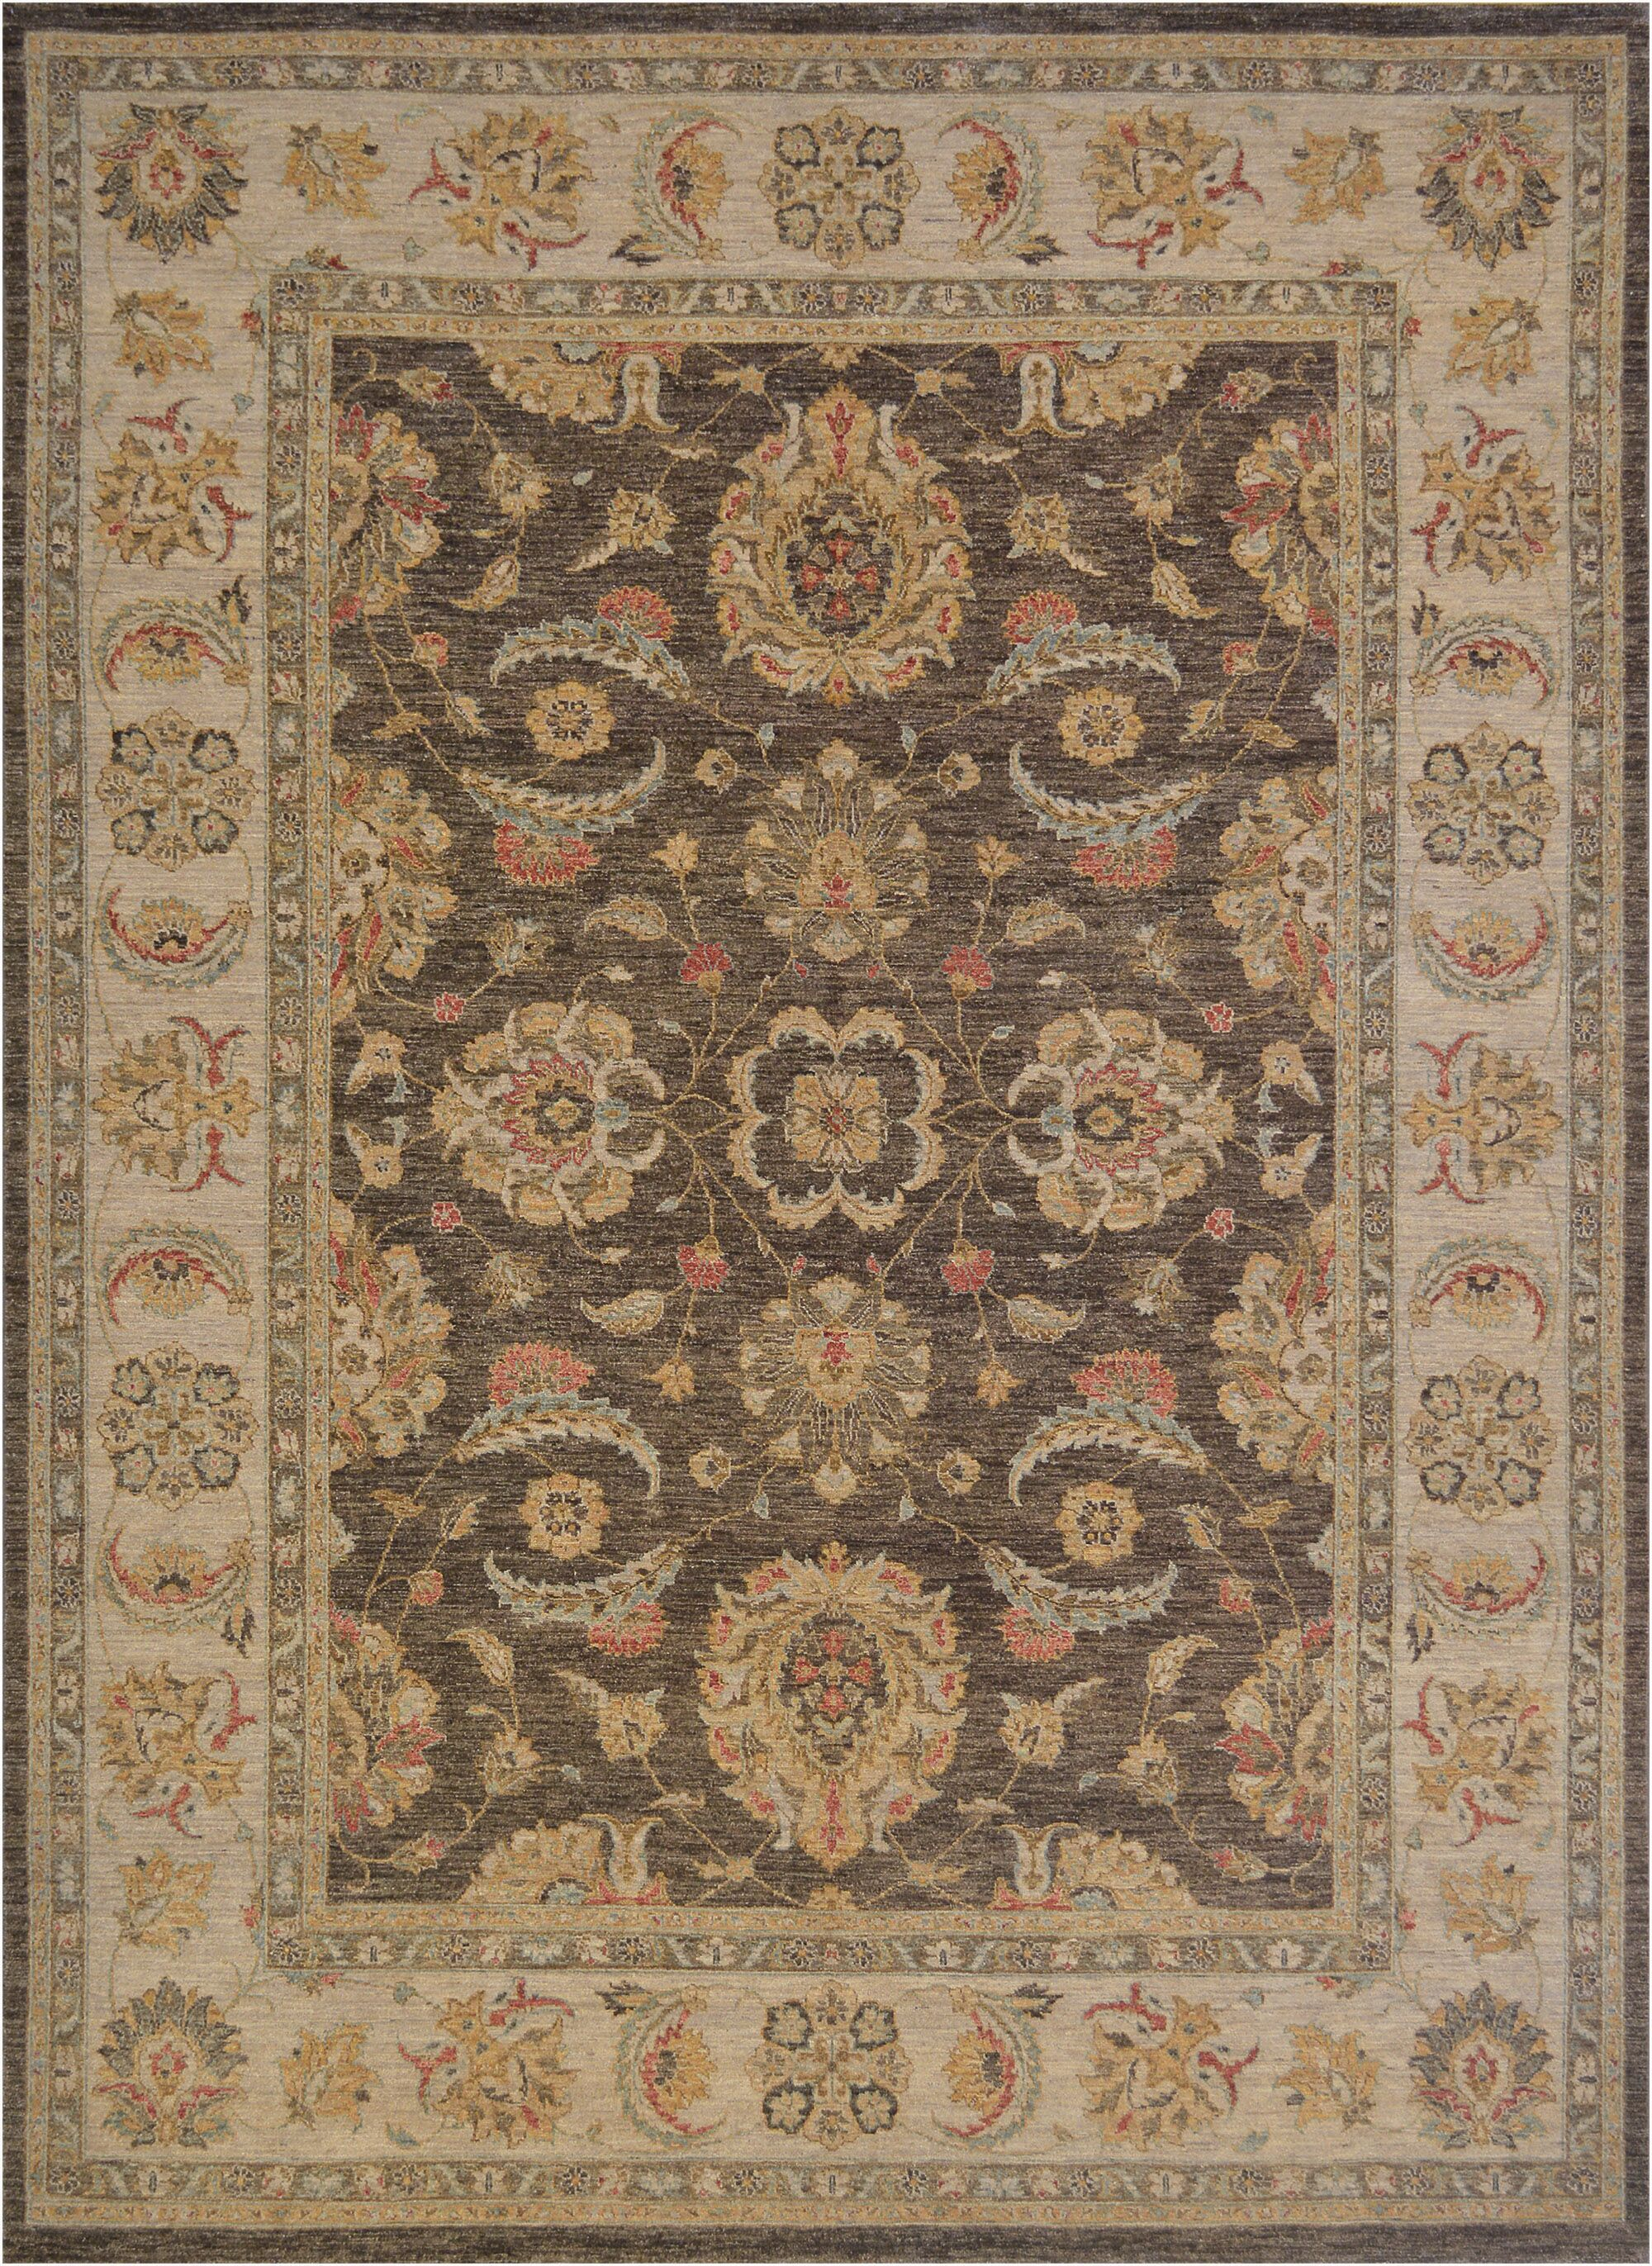 One-of-a-Kind Agra Fine Hand-Knotted Wool Brown/Beige Indoor Area Rug